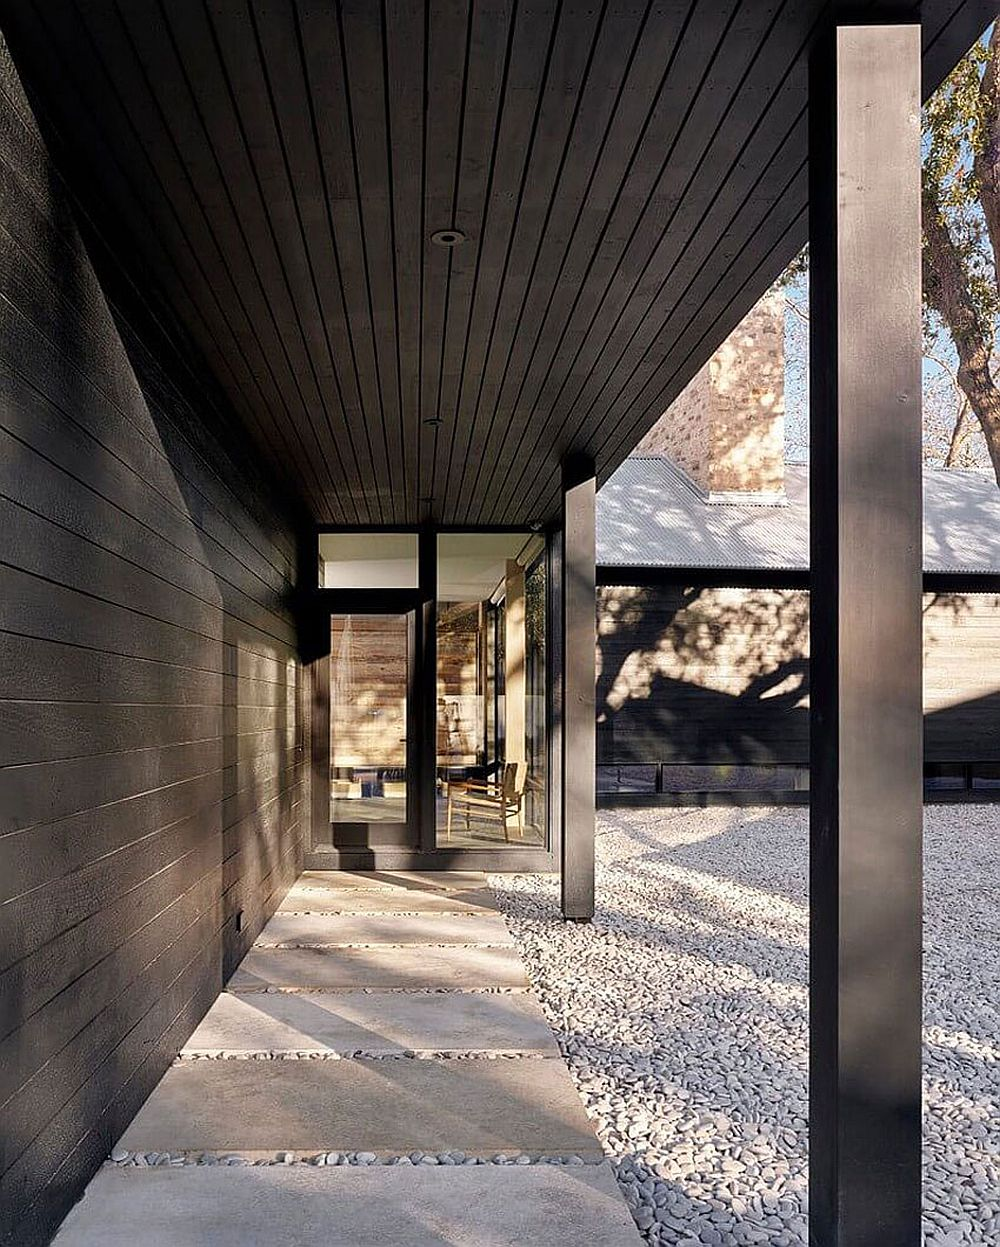 Covered walkway leads to the smart interior of the prefab home